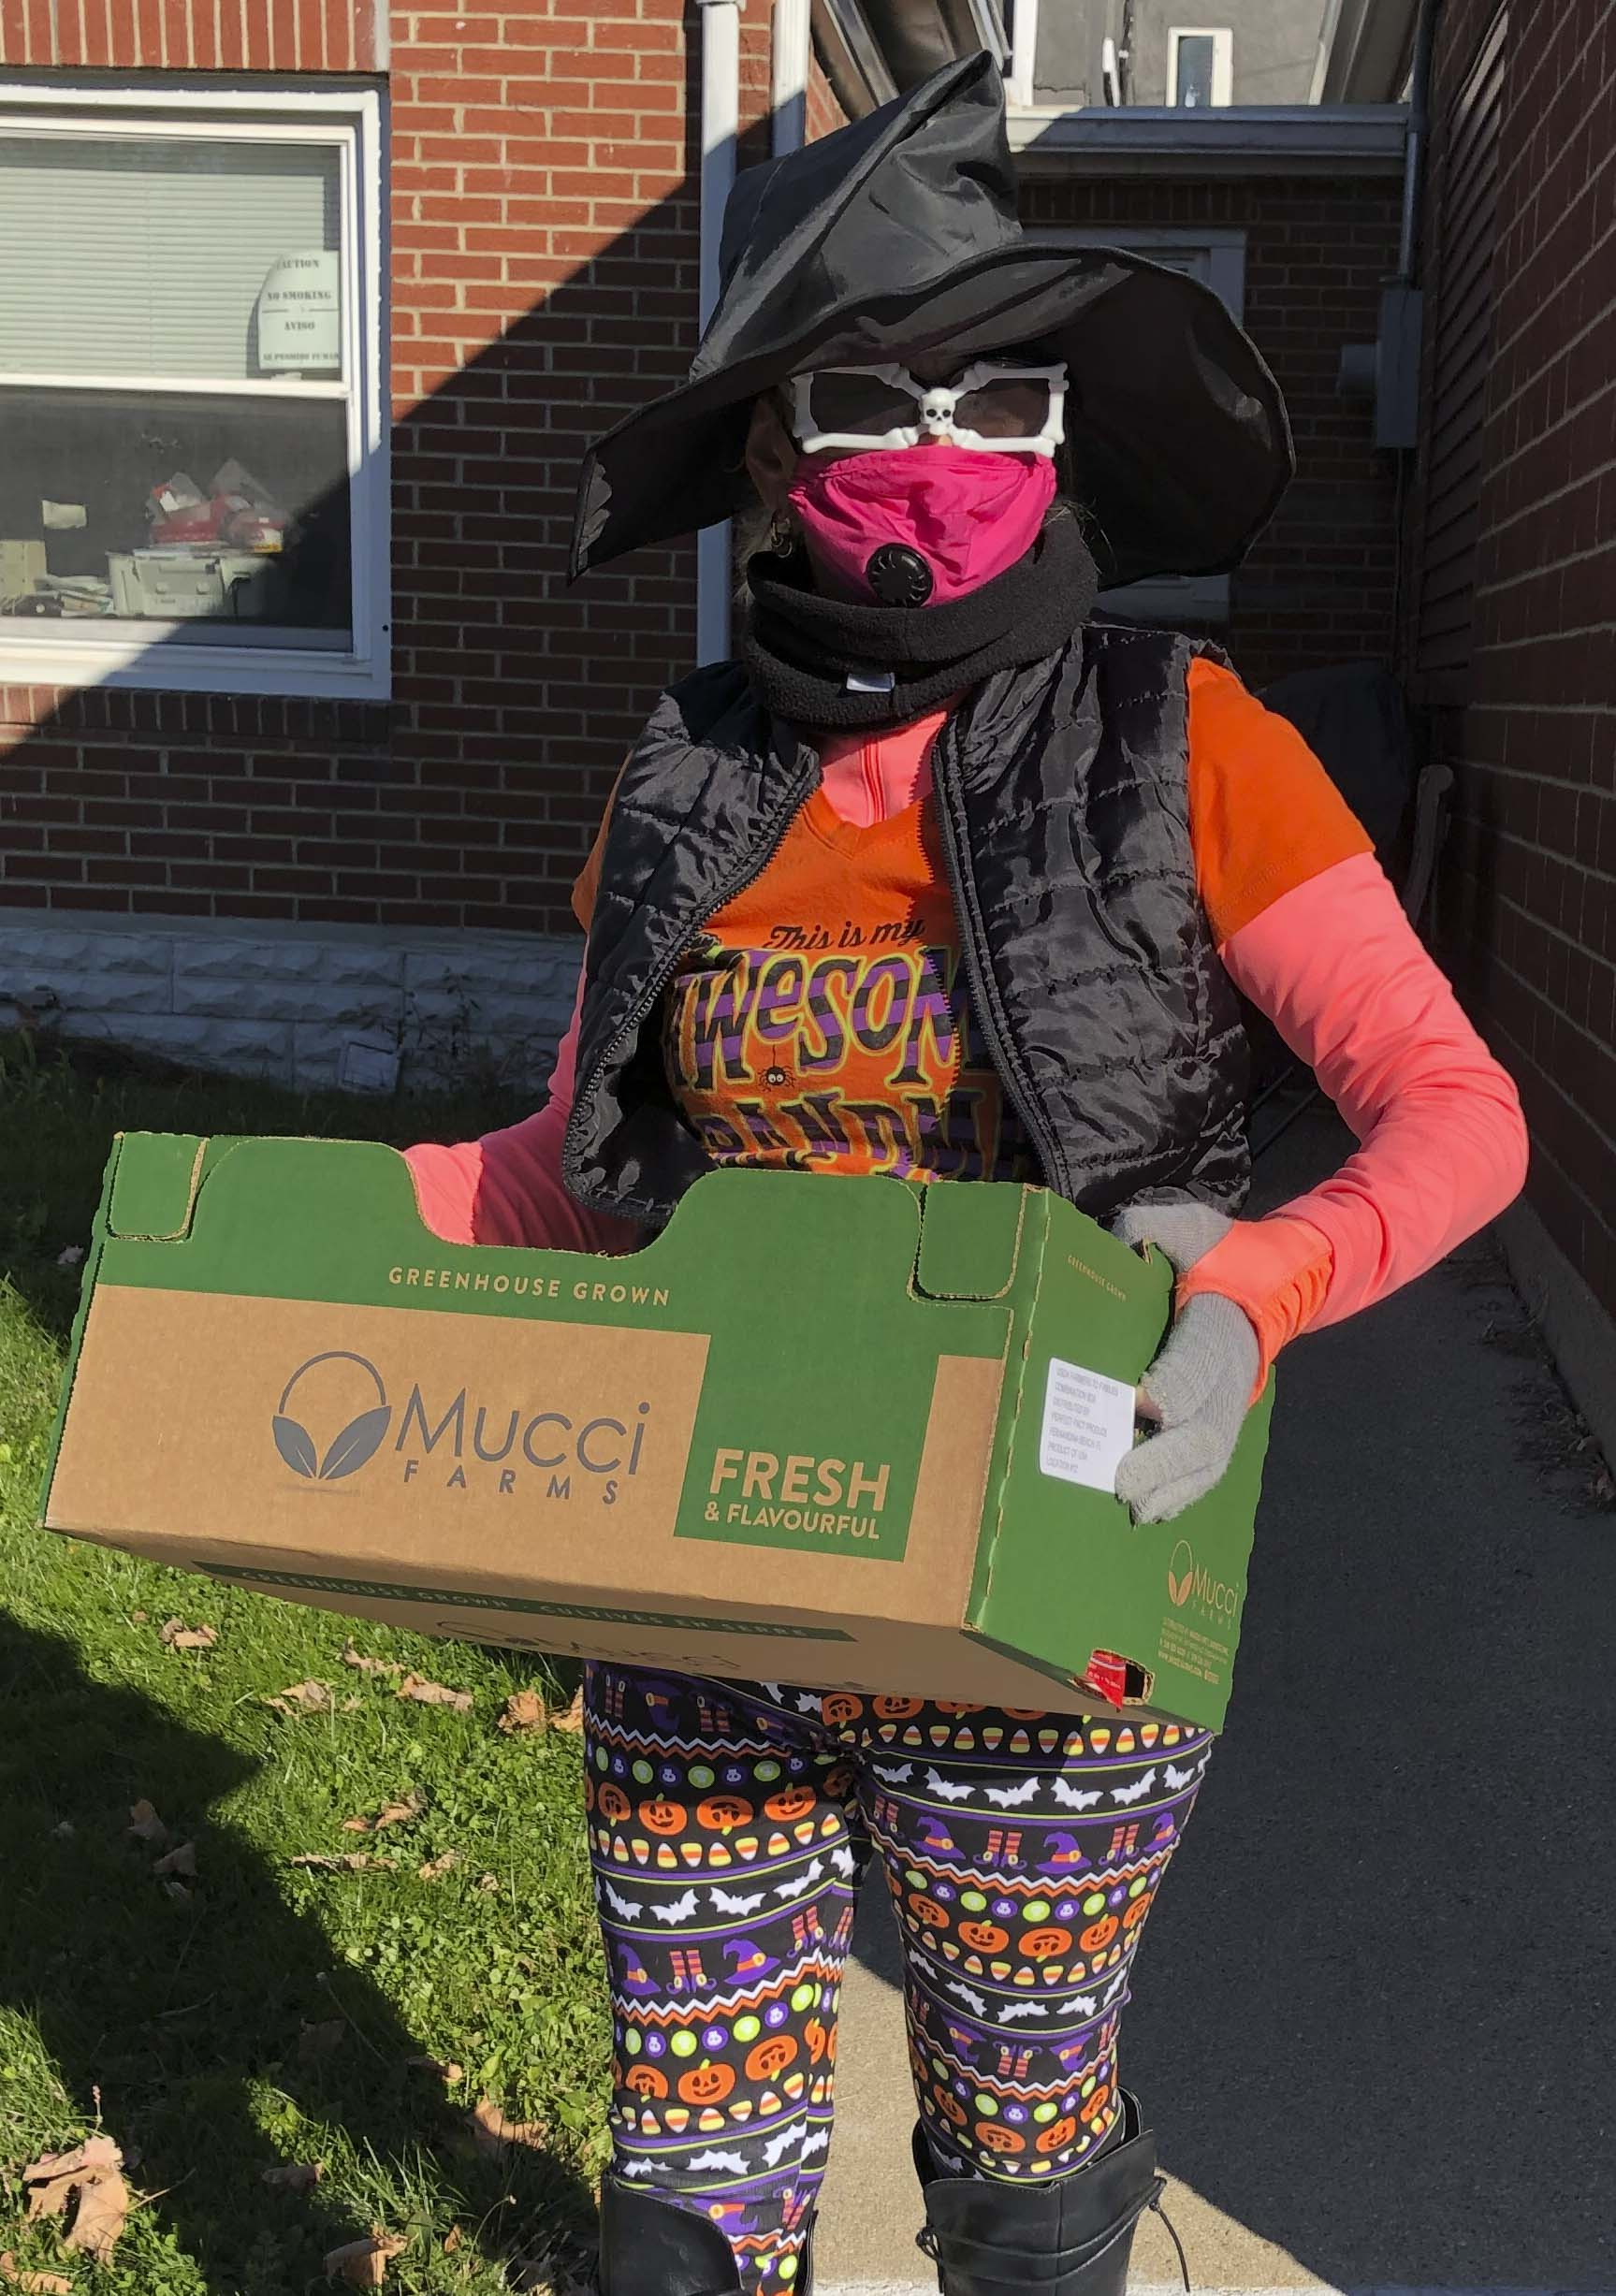 Monticello Senior Dining Site Manager Regina Engelbart was seen decked out in her Halloween and PPE best as she delivered meals to senior citizens' homes on Oct. 30. The boxes of food were put together by members of the Anamosa FFA. (Photo by Mark Spensley)